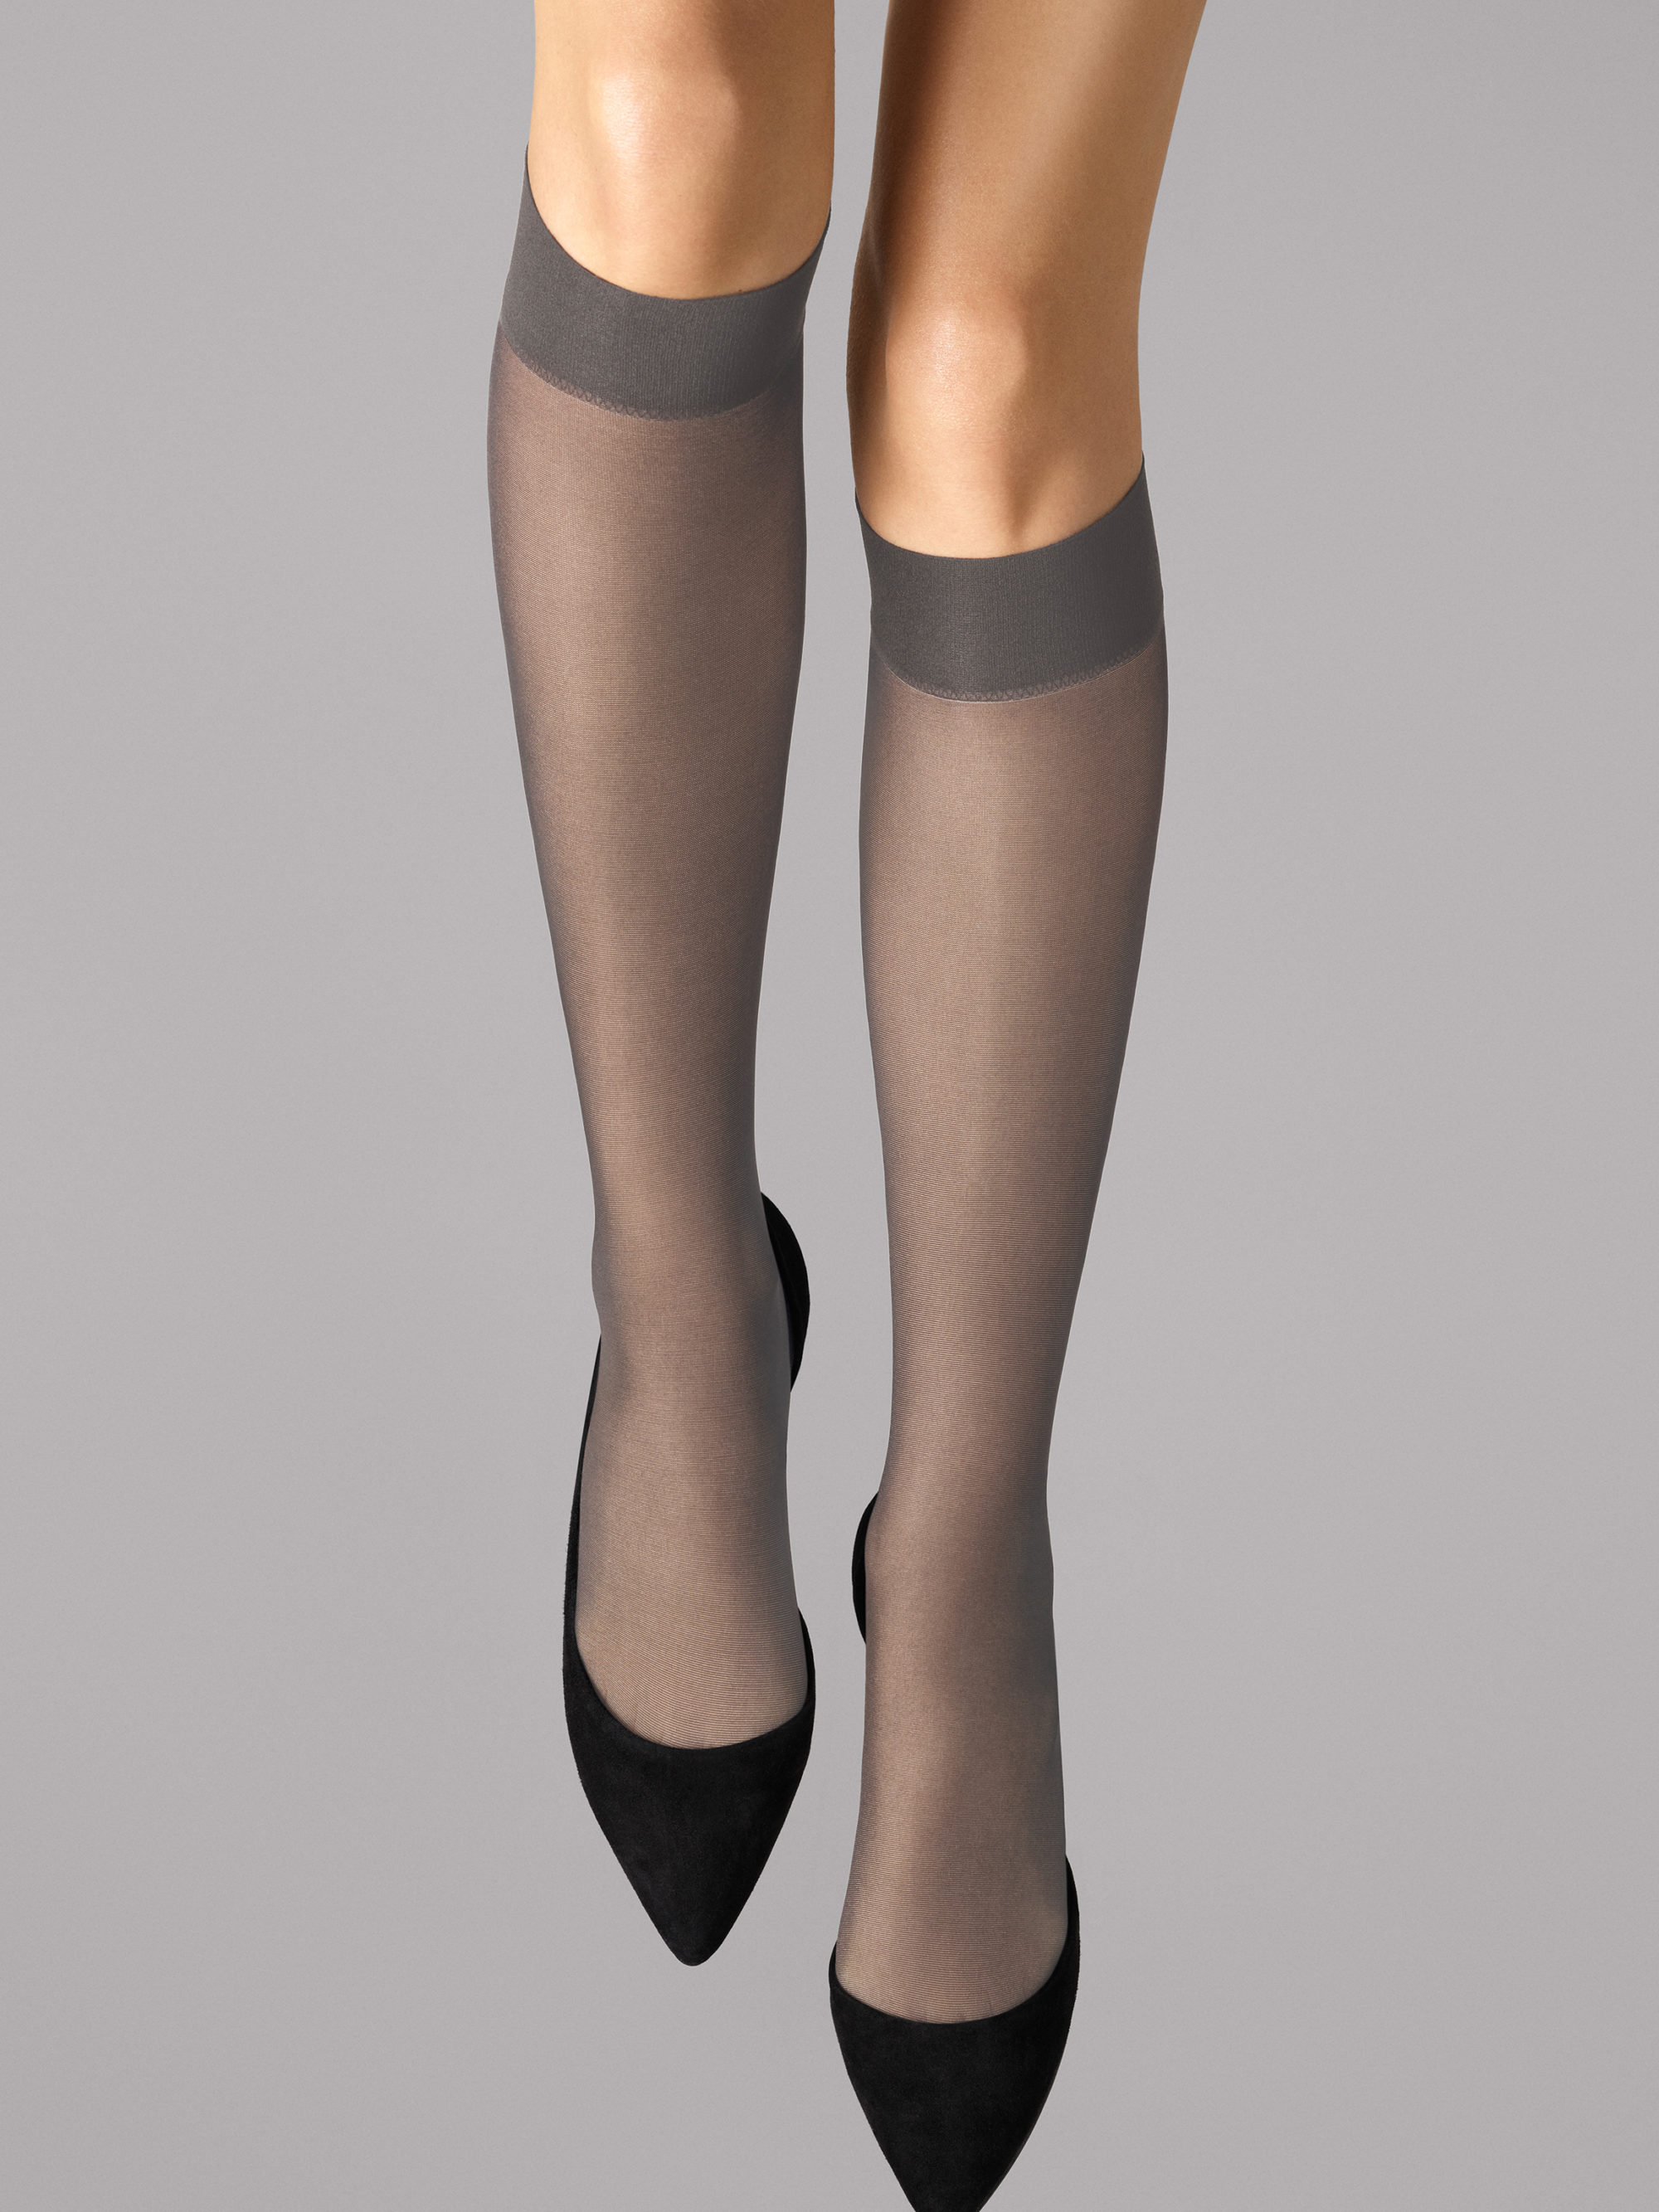 Wolford Satin Touch 20 mibas